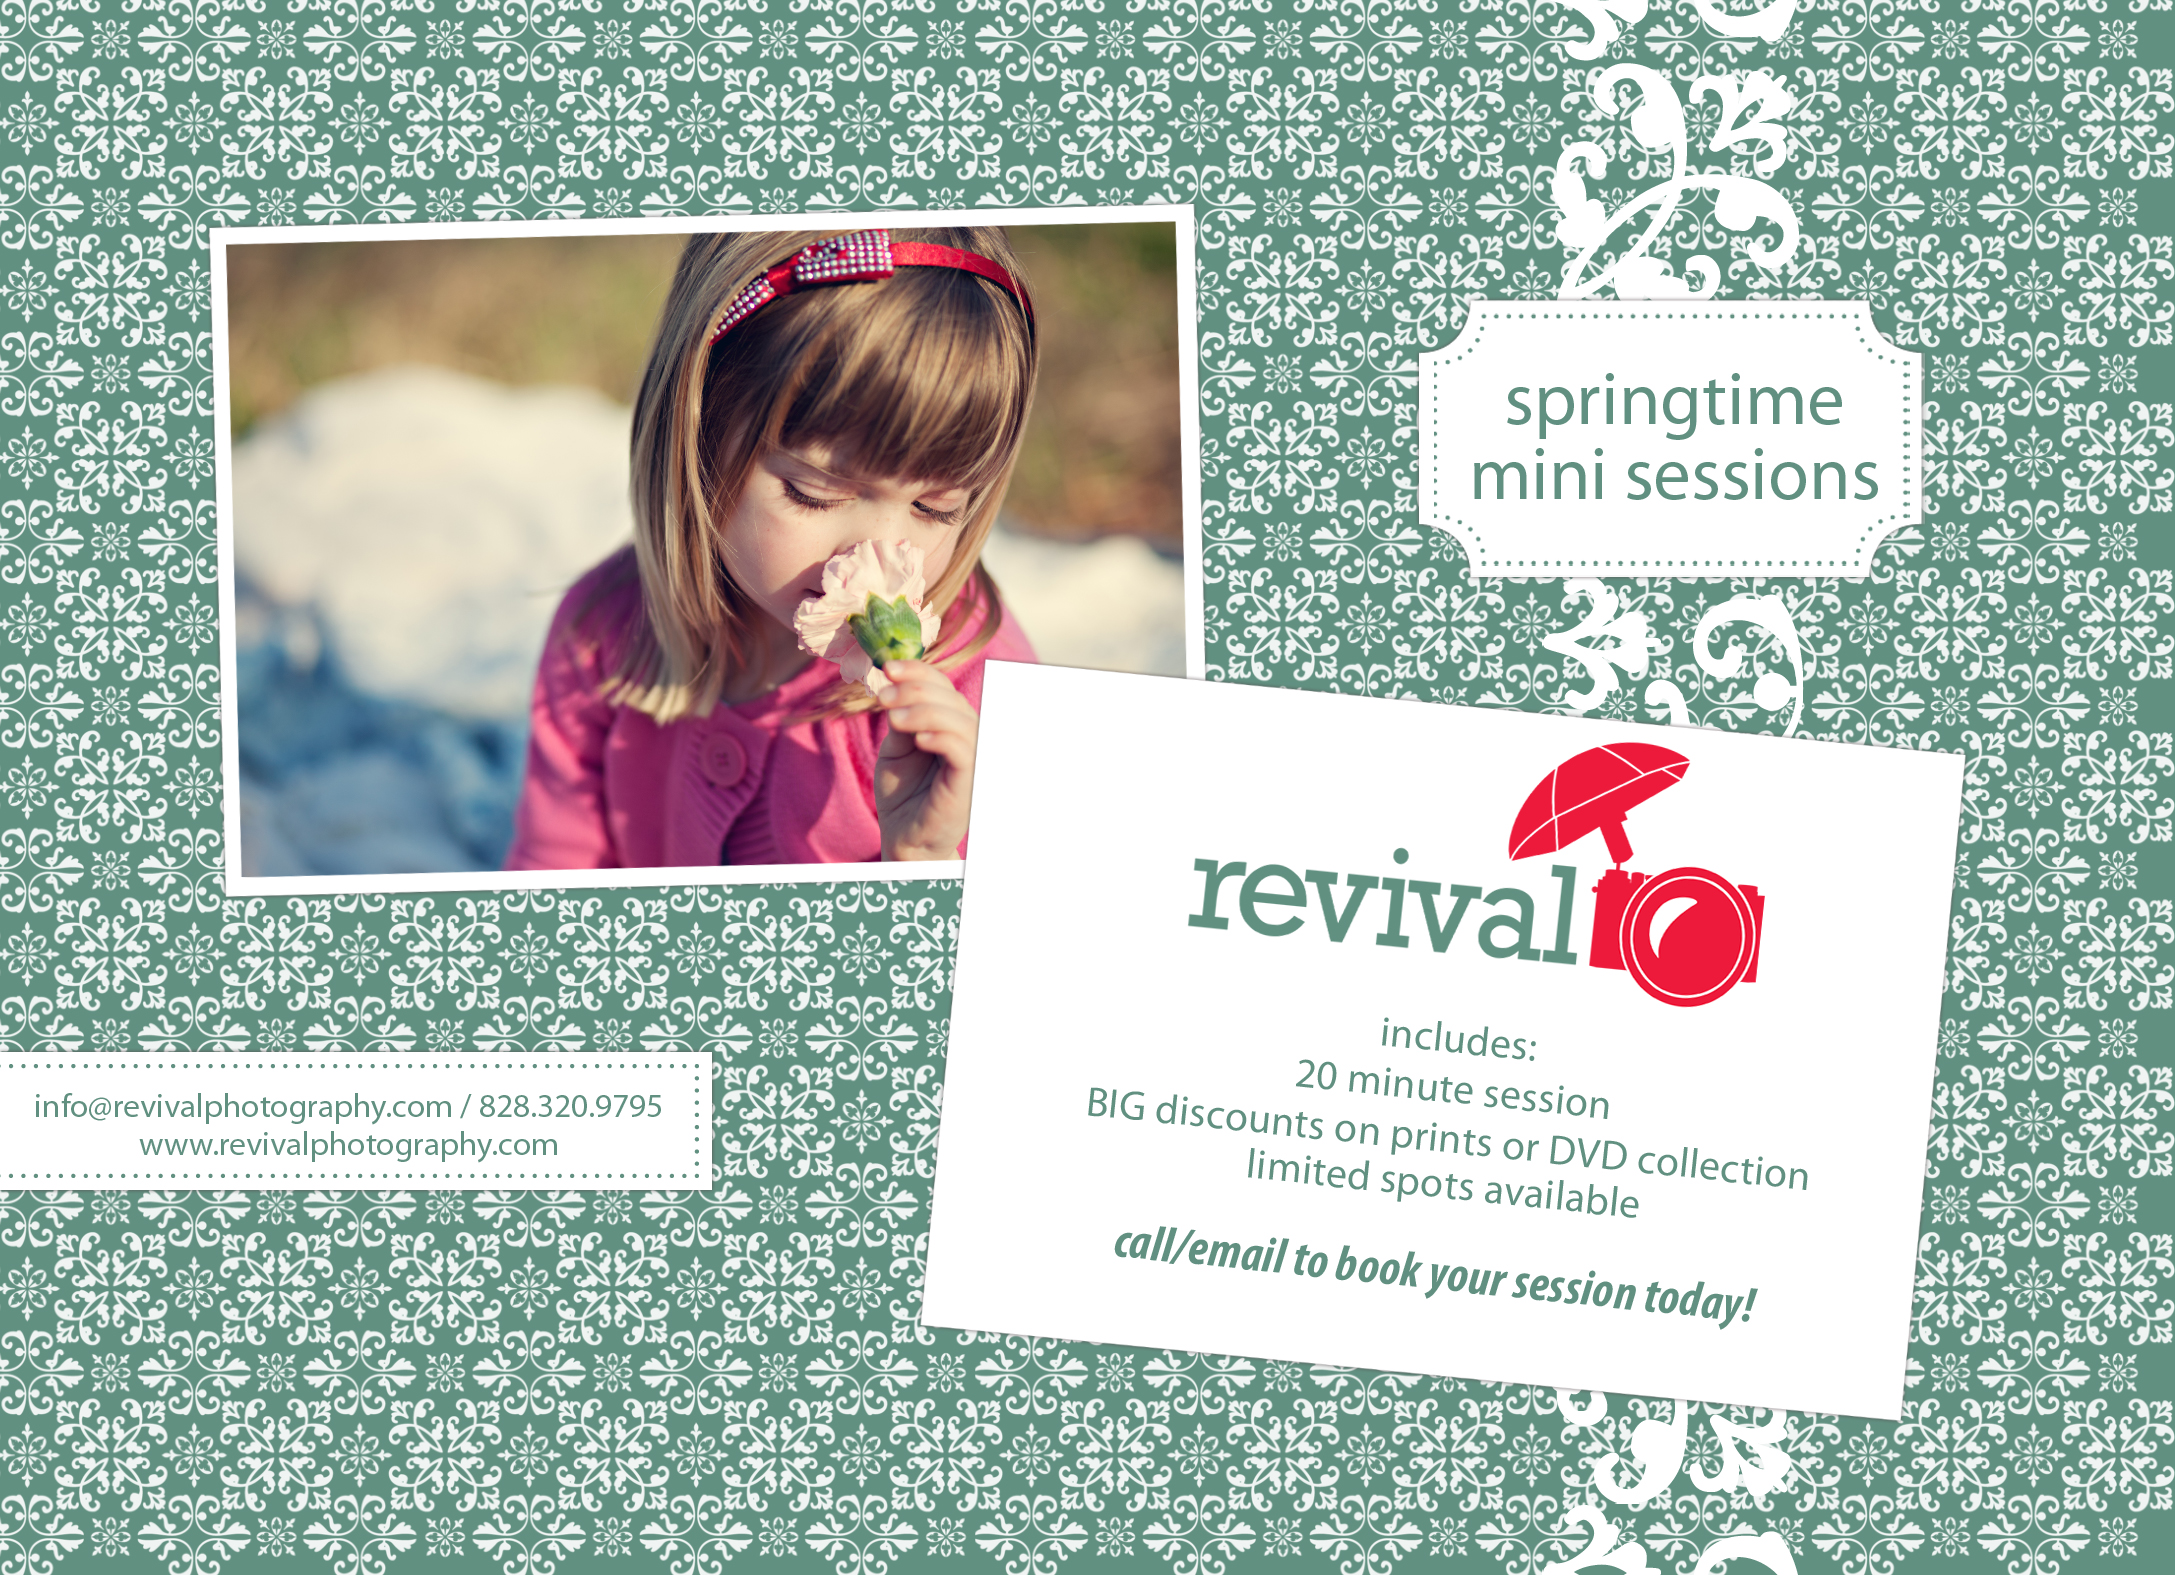 Revival Photography March Mini Sessions!